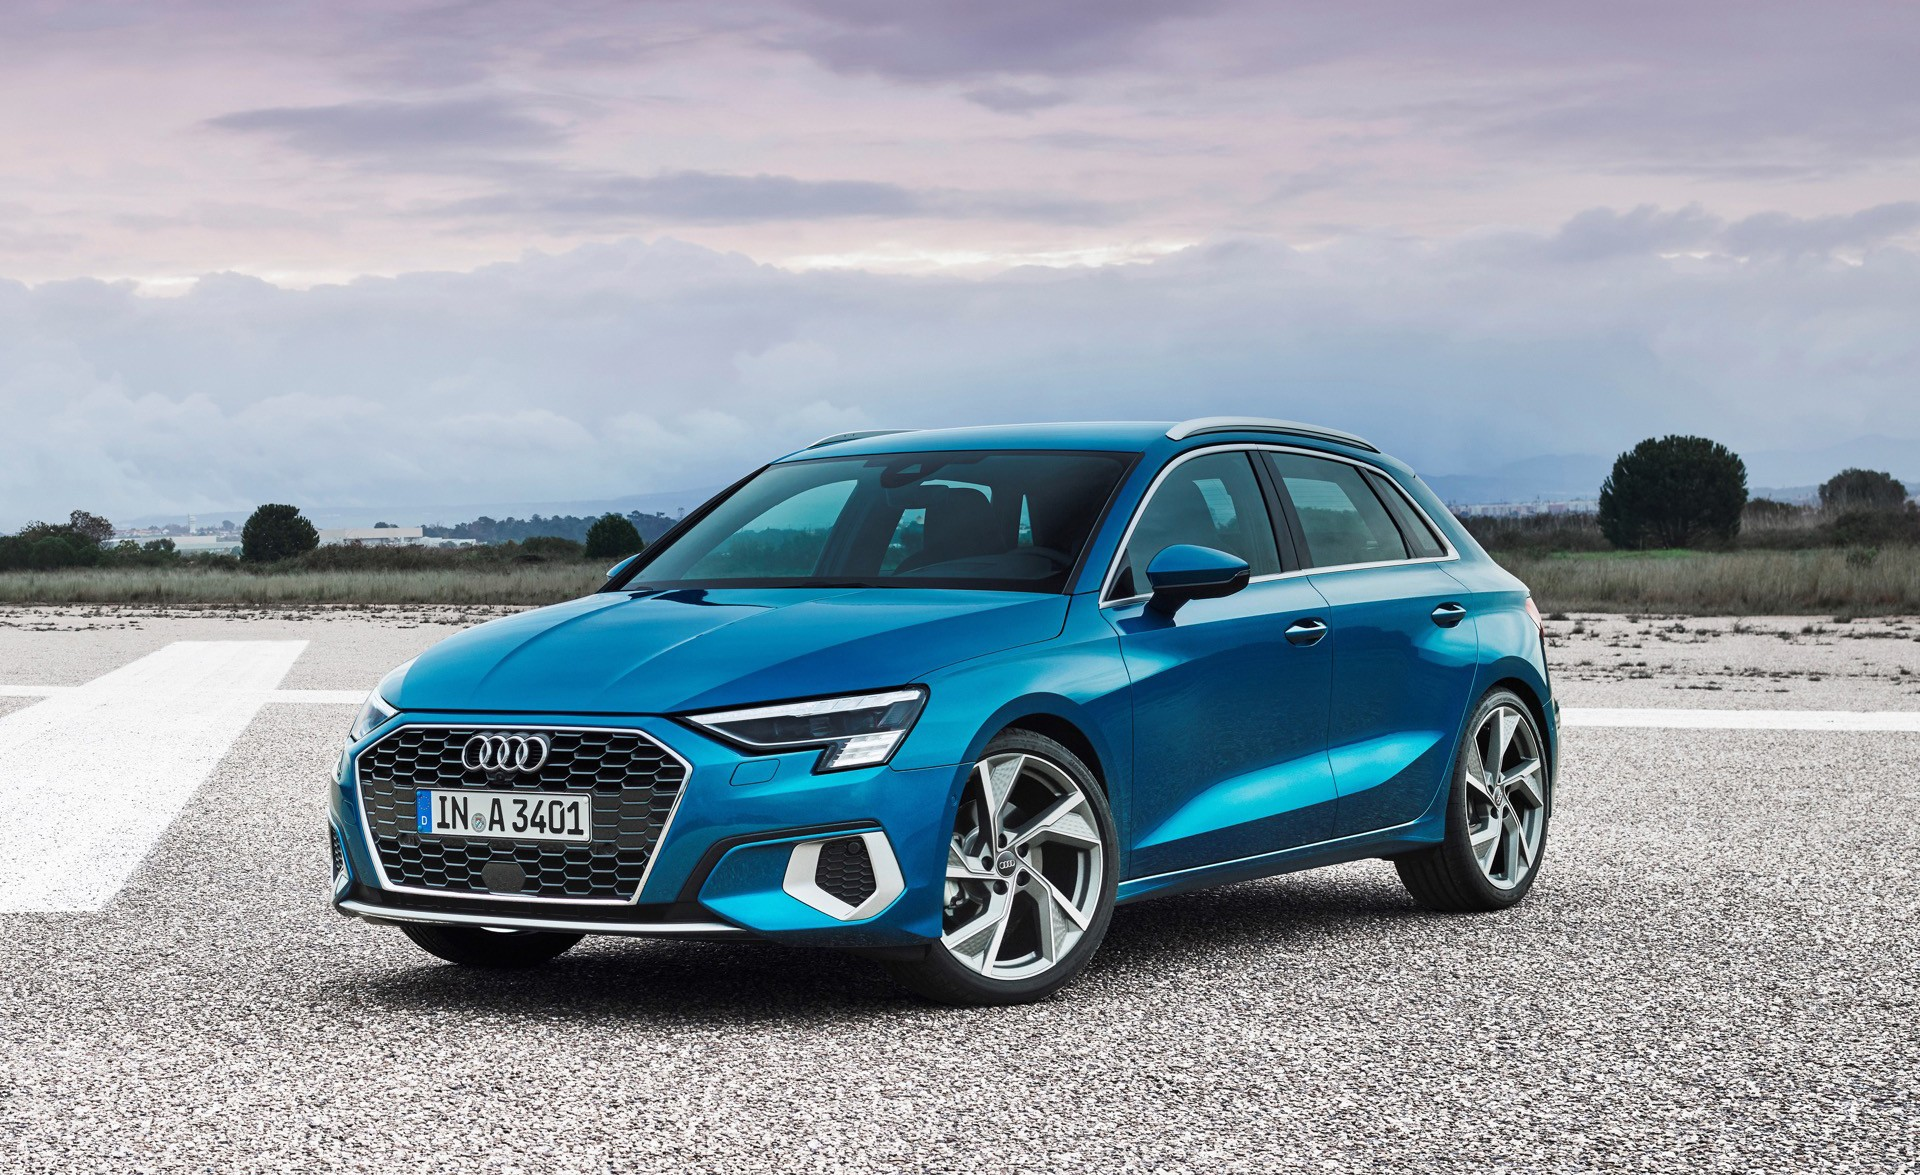 2020 audi a3 sportback debuts with sharp new looks